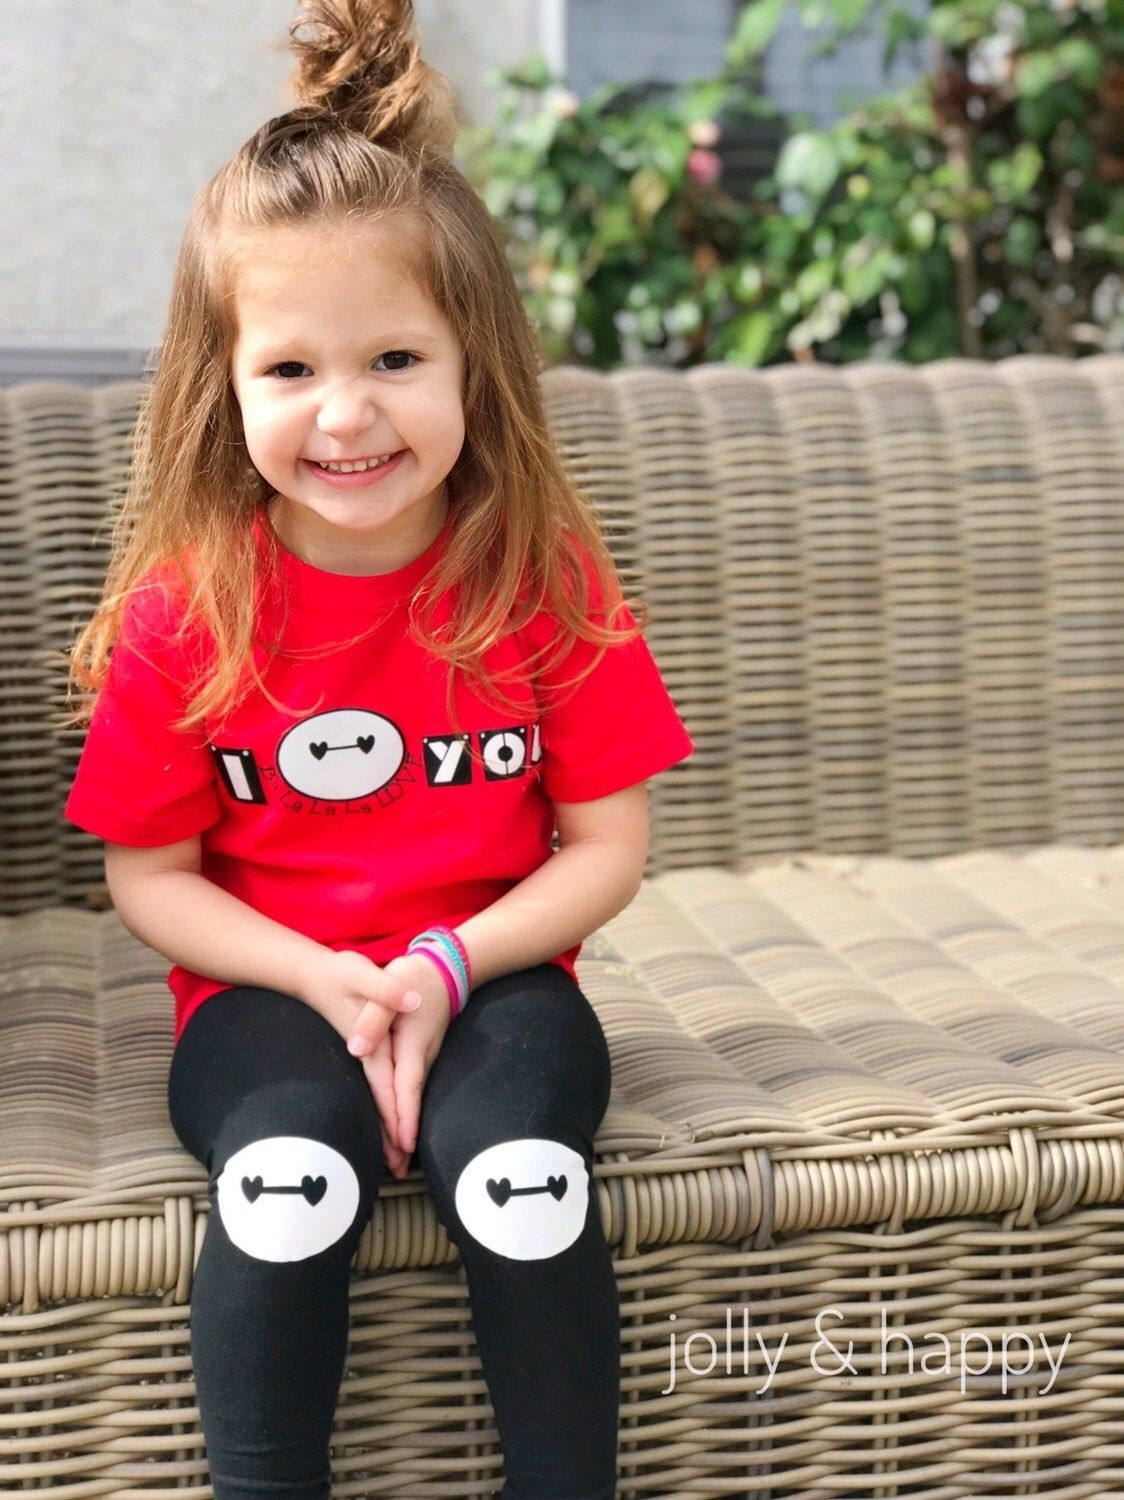 Diy disney elbow and knee patches with images cricut